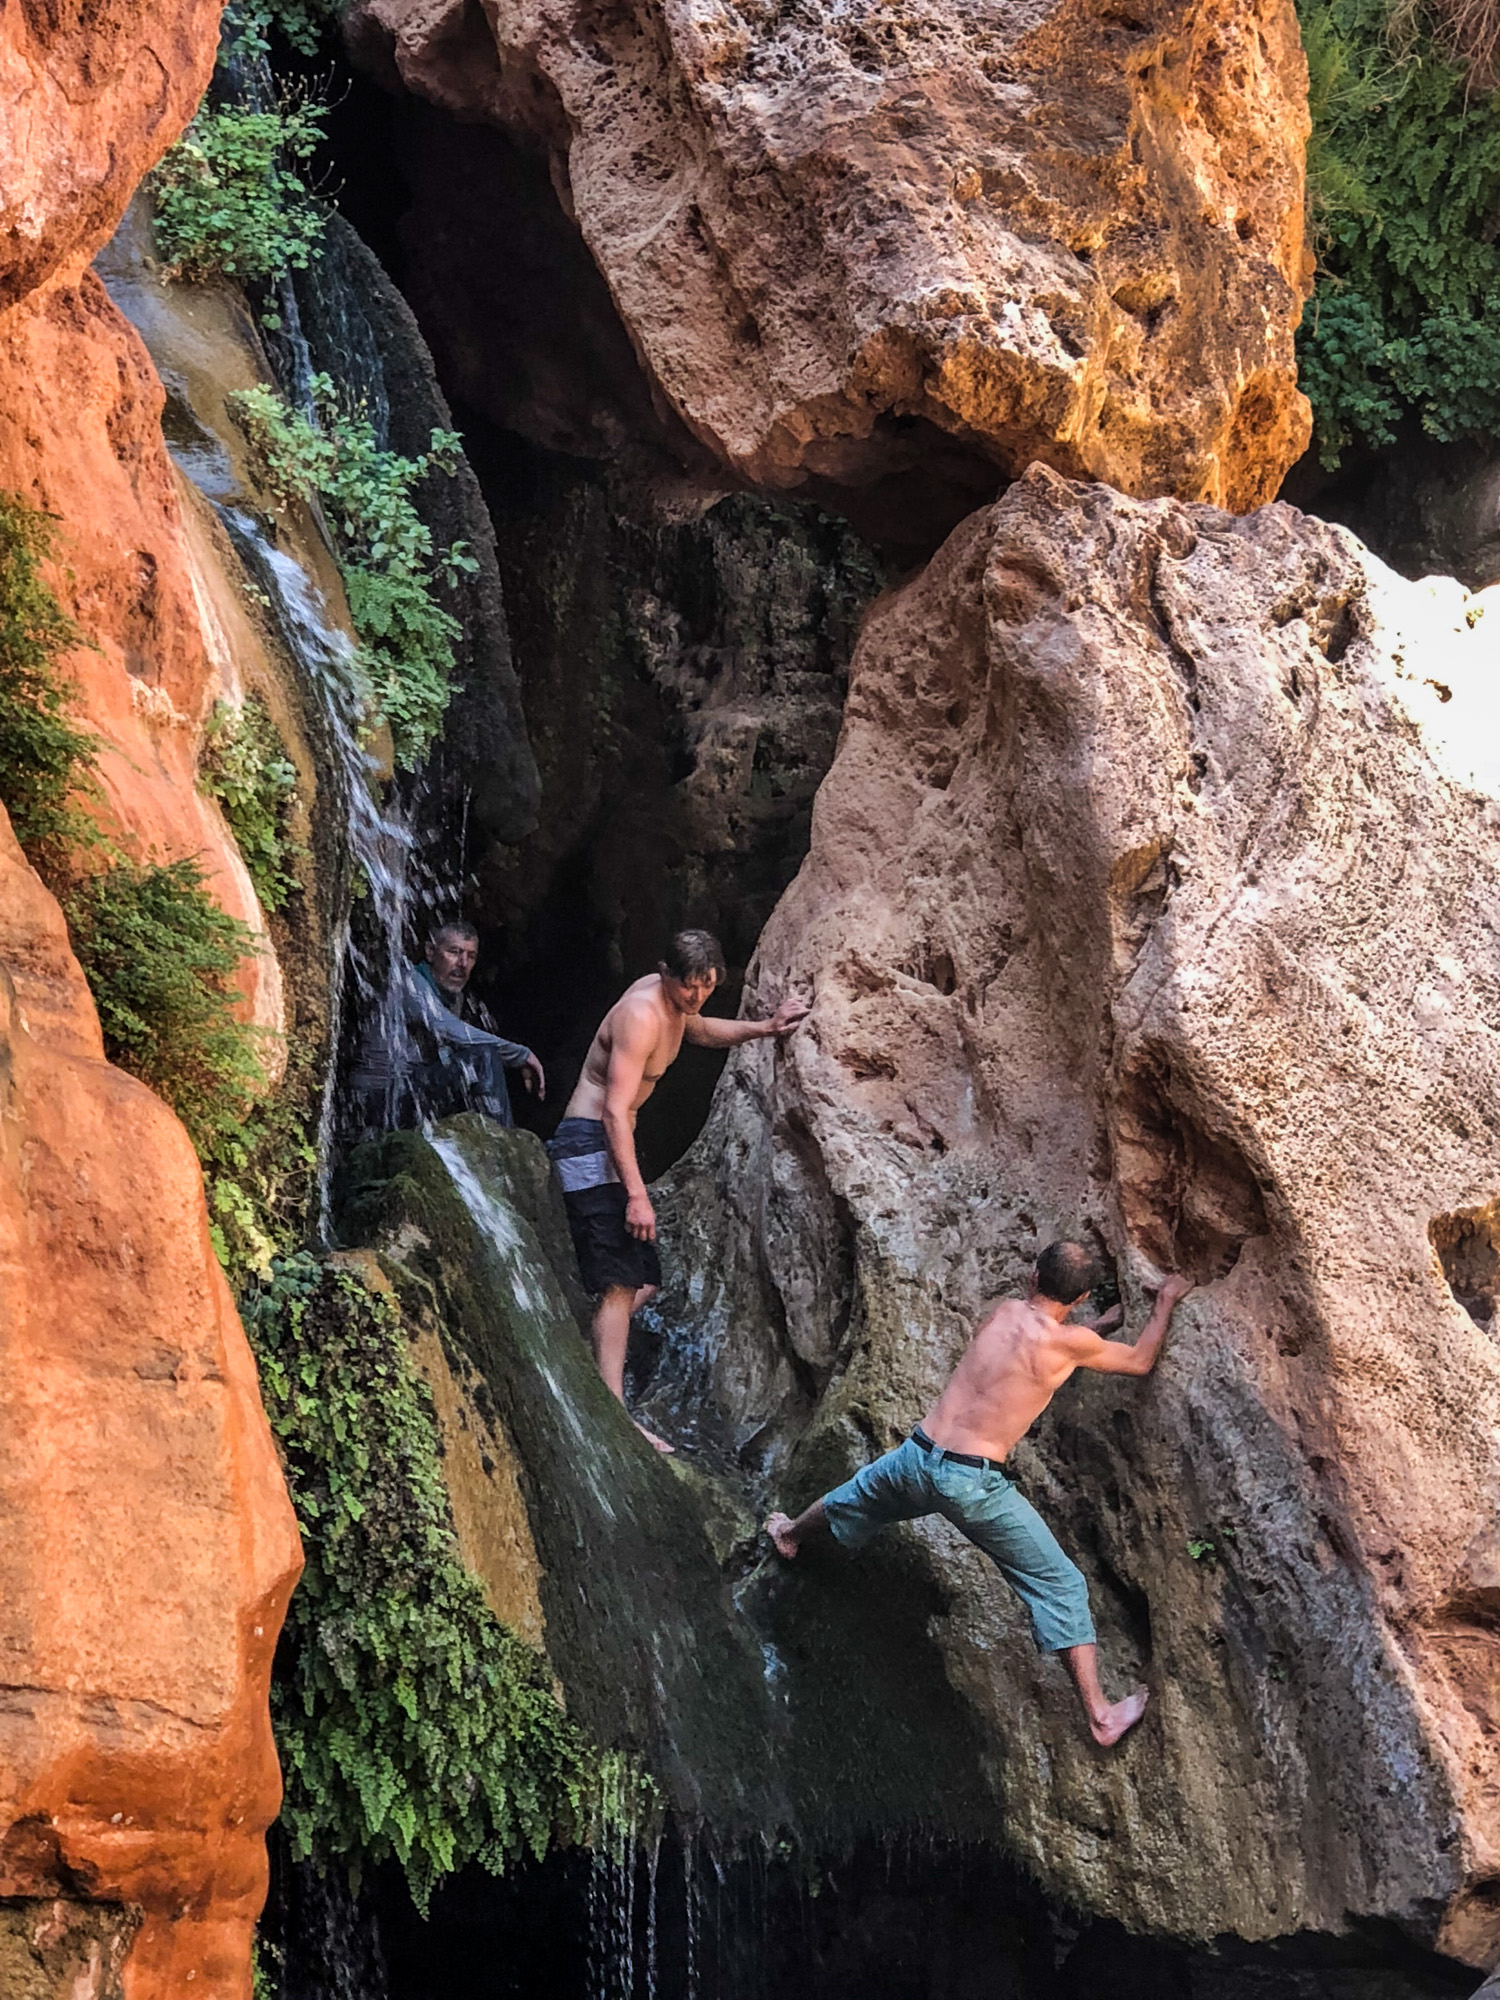 The waterfall at Elves Chasm